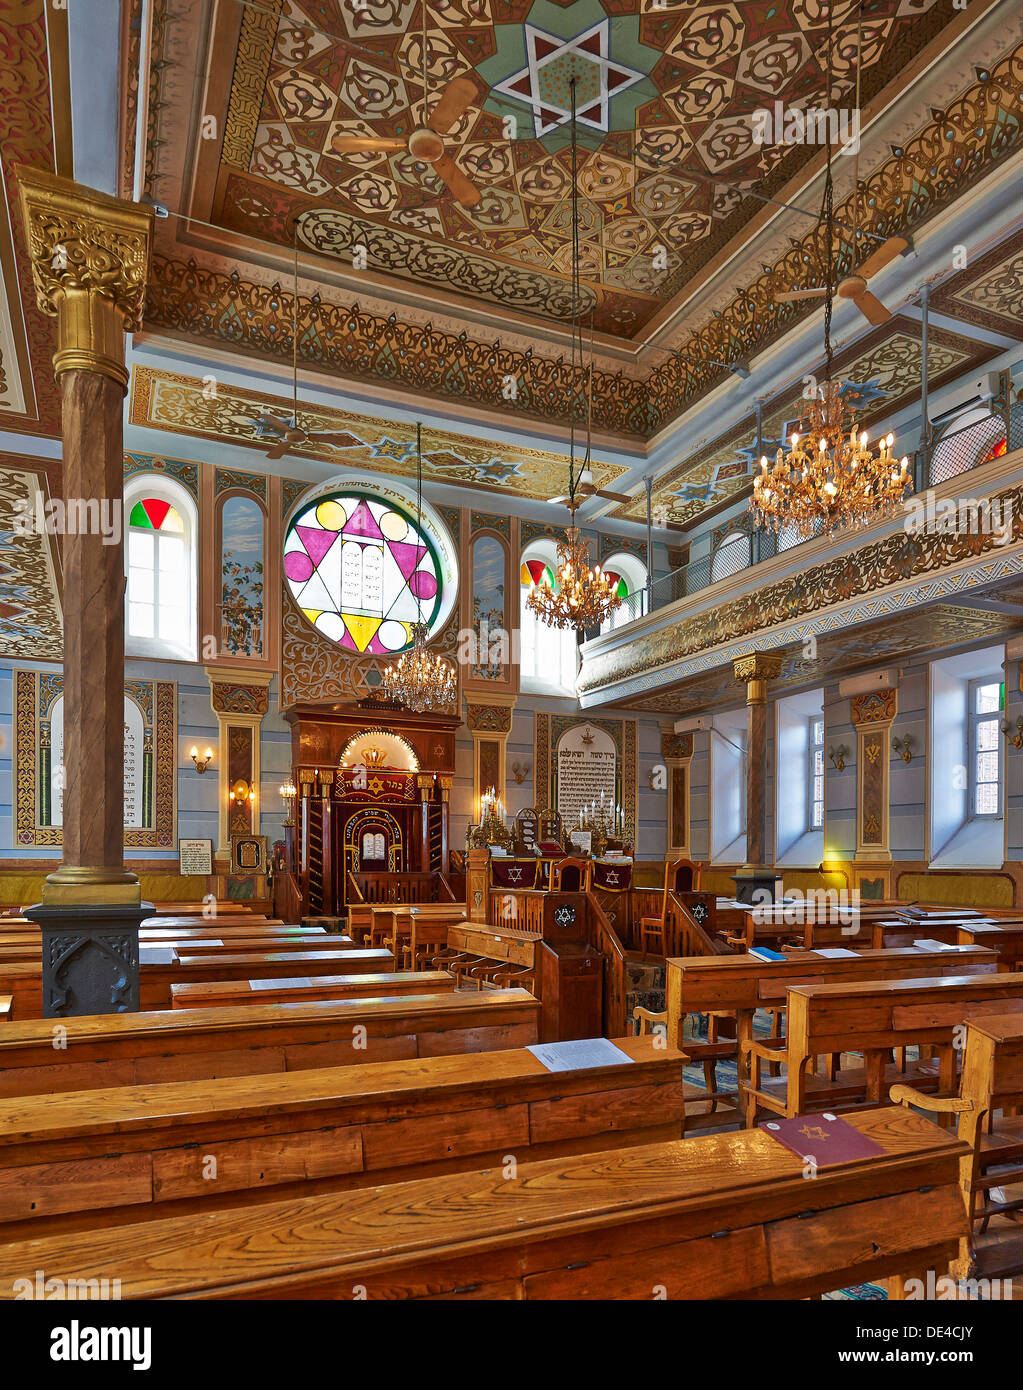 interior shot of synagogue, Tbilisi, Georgia - Stock Image